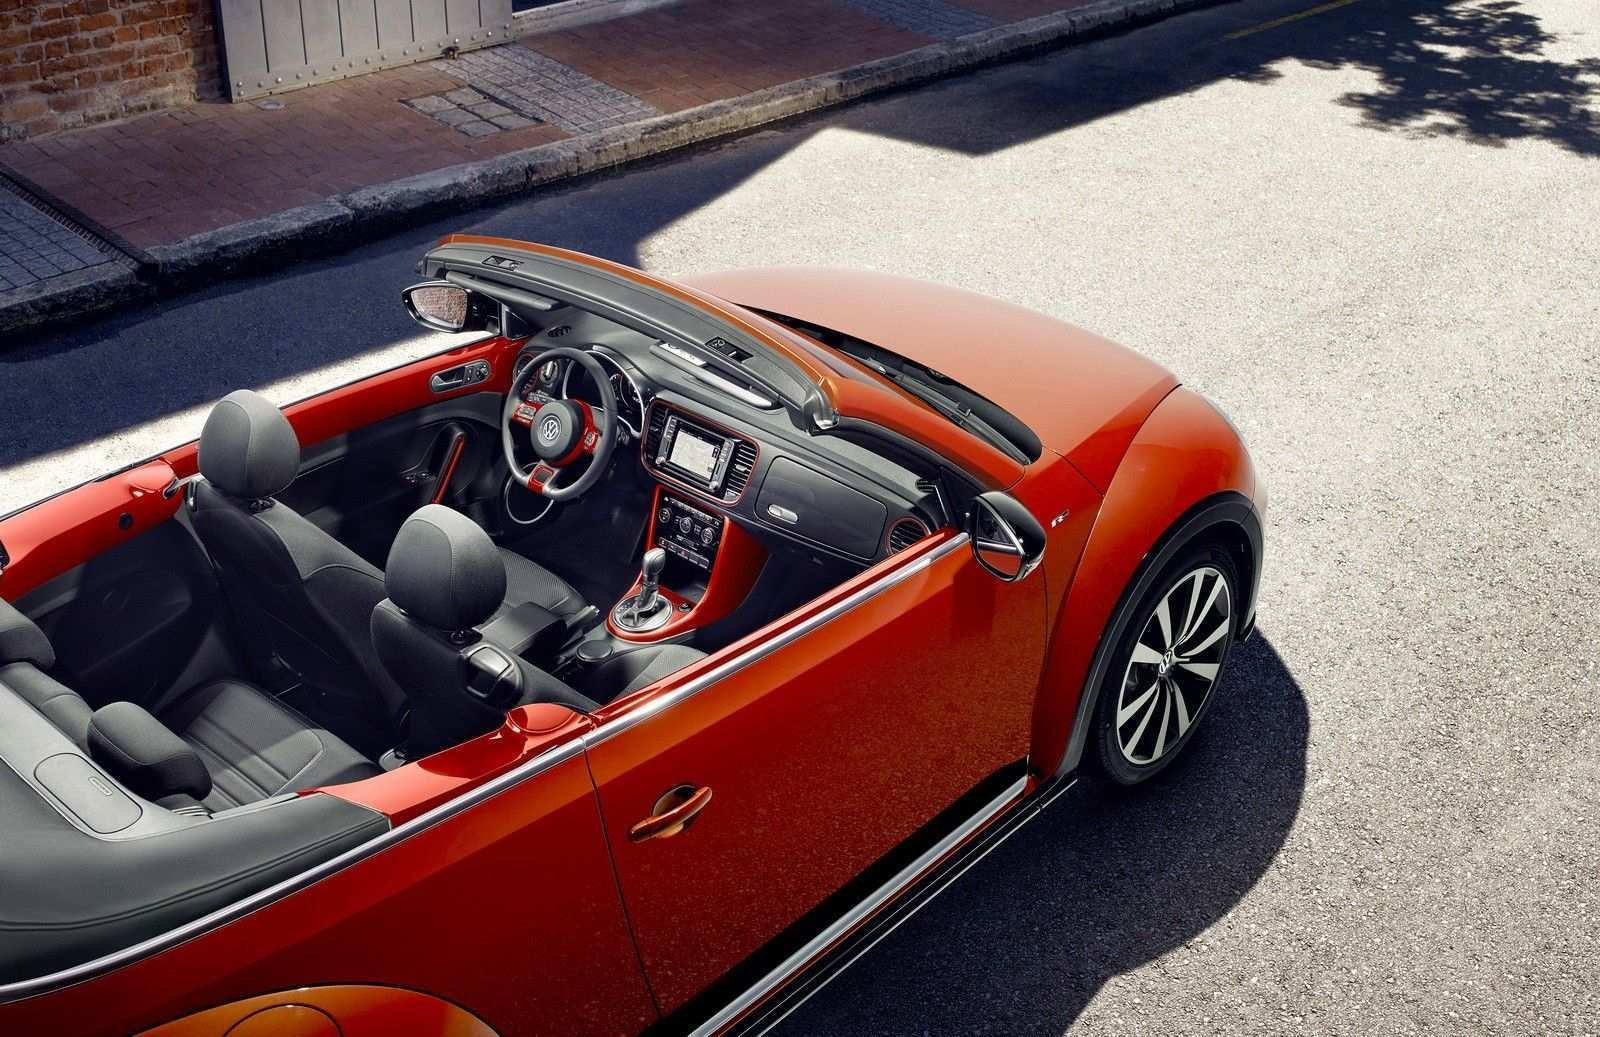 82 All New 2020 Vw Beetle Convertible Spy Shoot with 2020 Vw Beetle Convertible